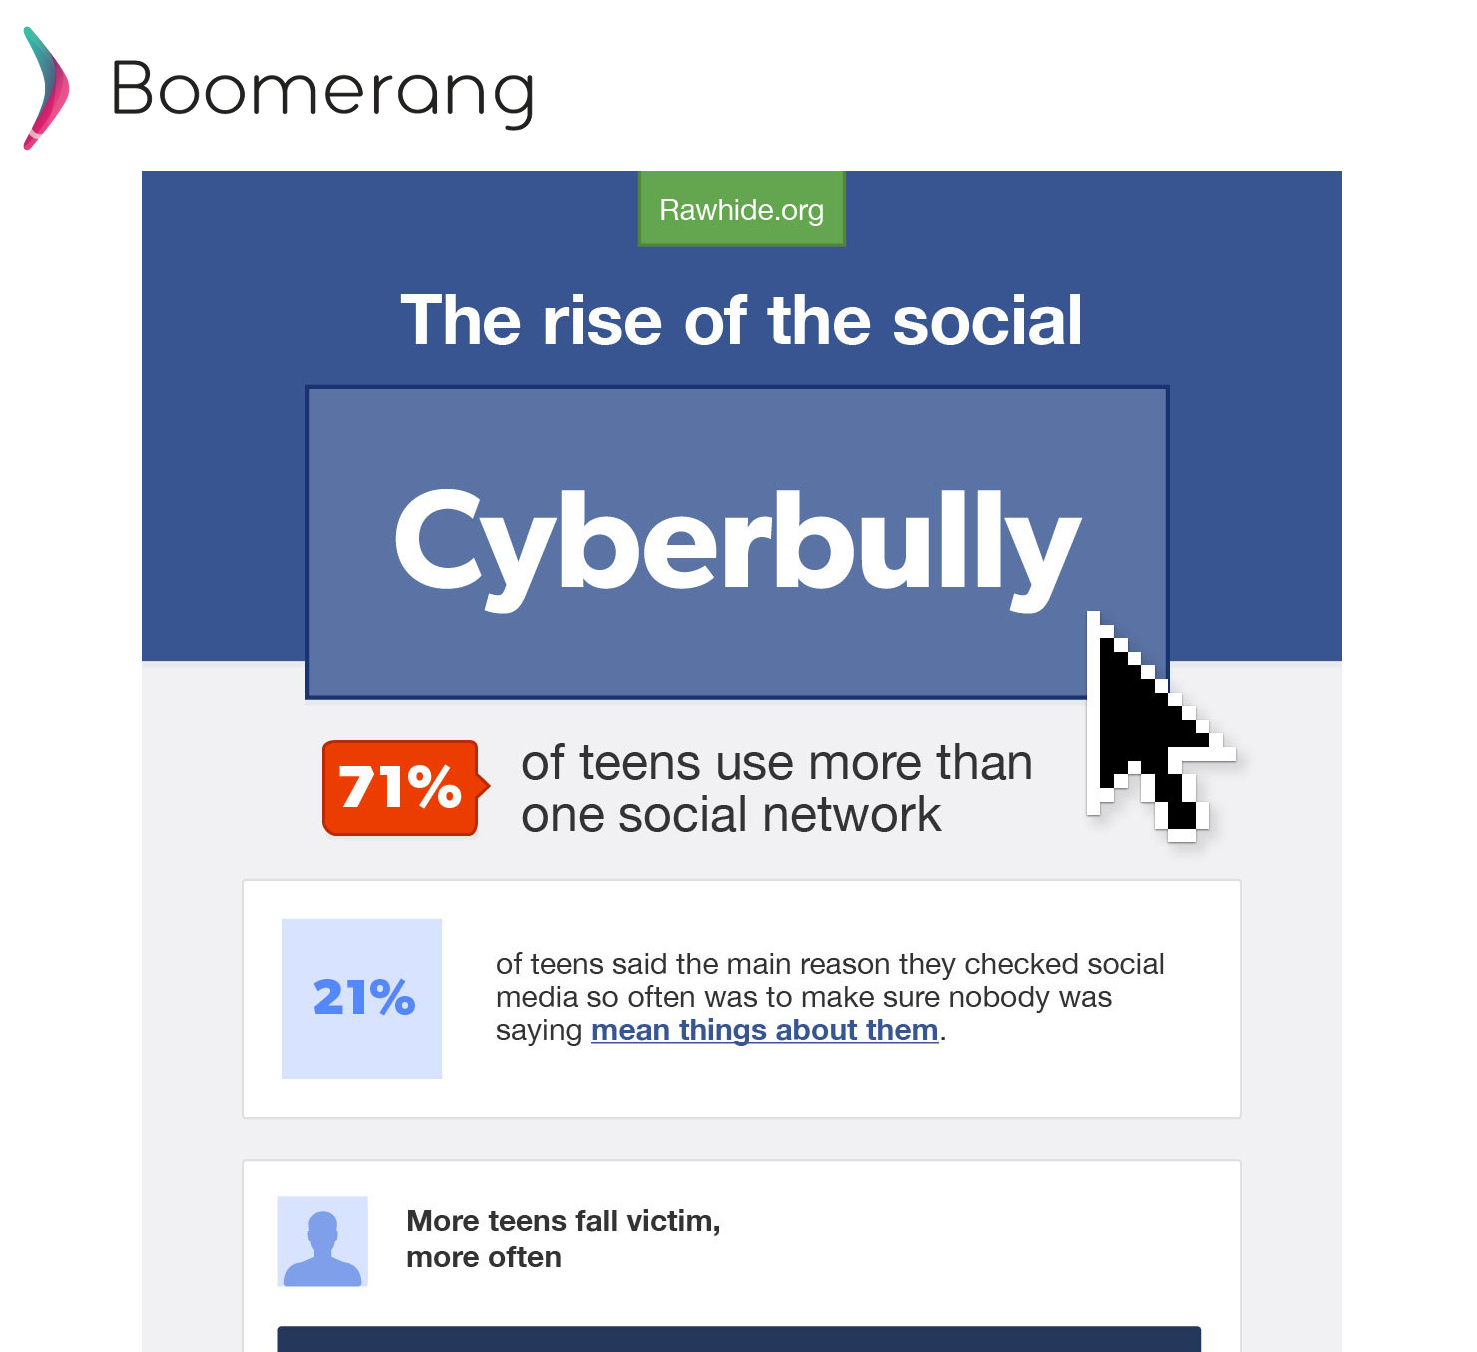 Rawhide Cyberbullying Infographic